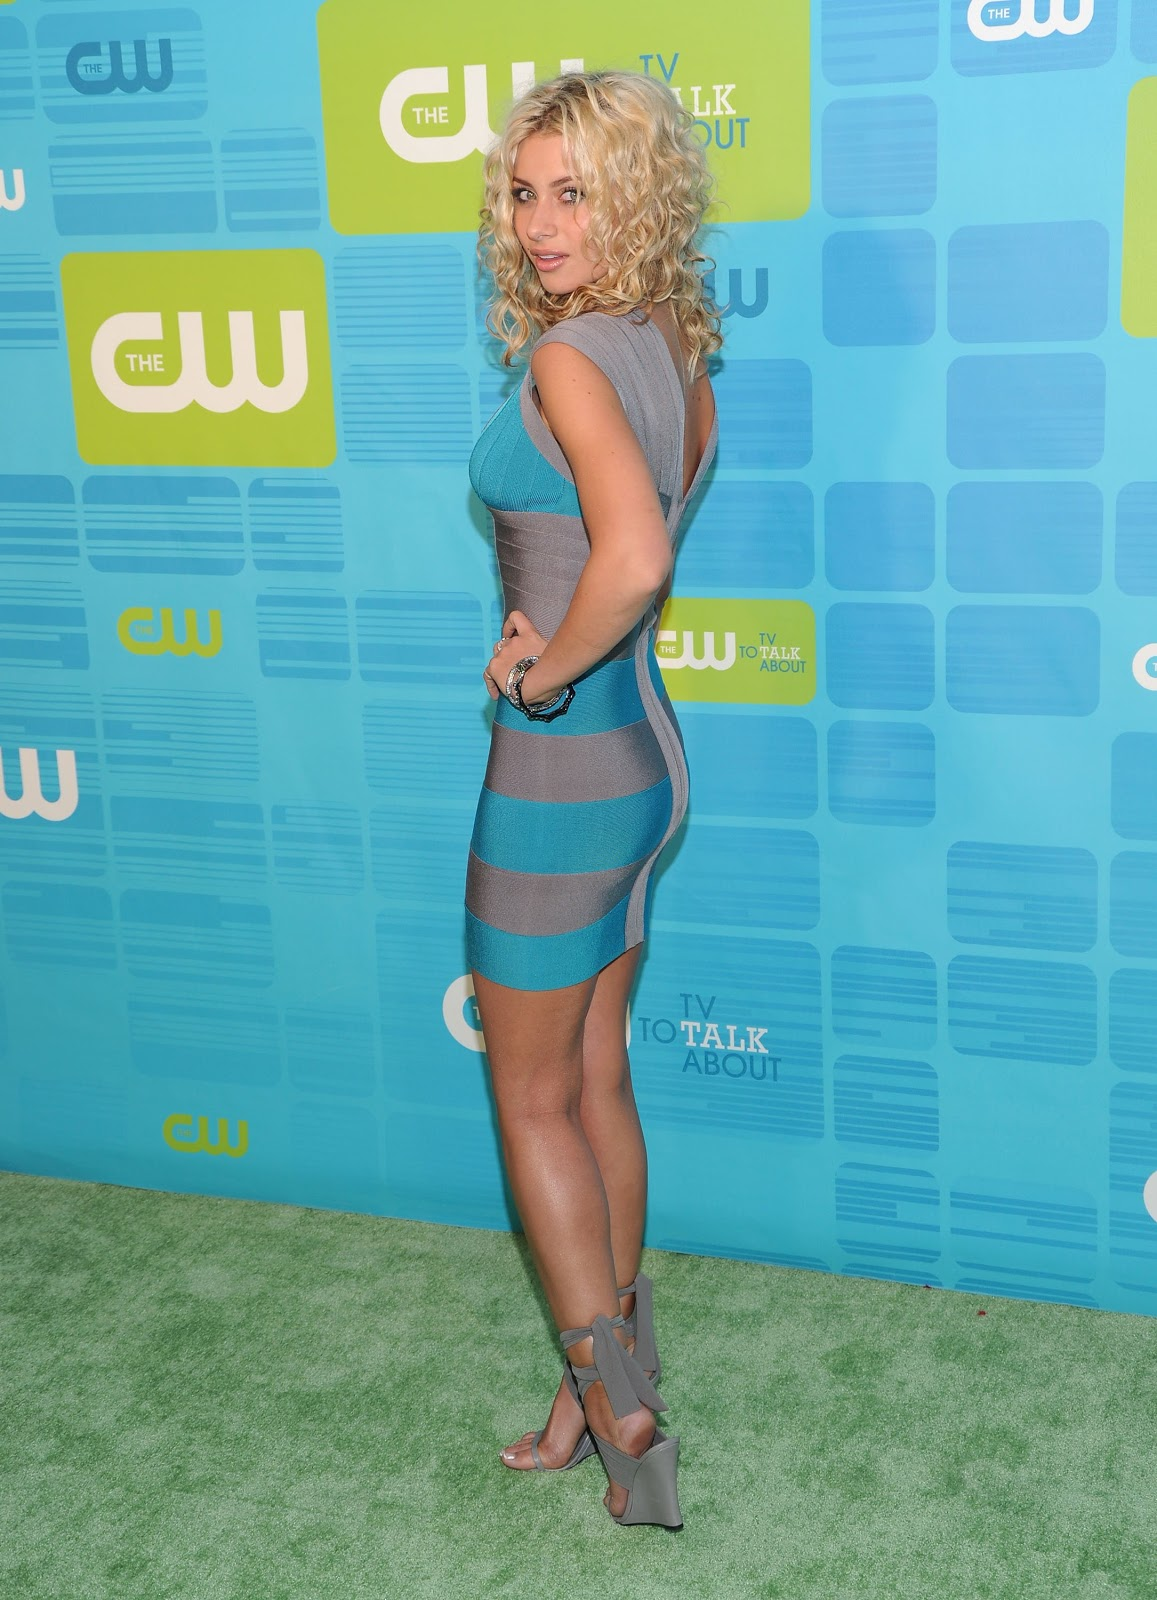 Aly Michalka Bio And Picture As Peoples Choice Awards 2011